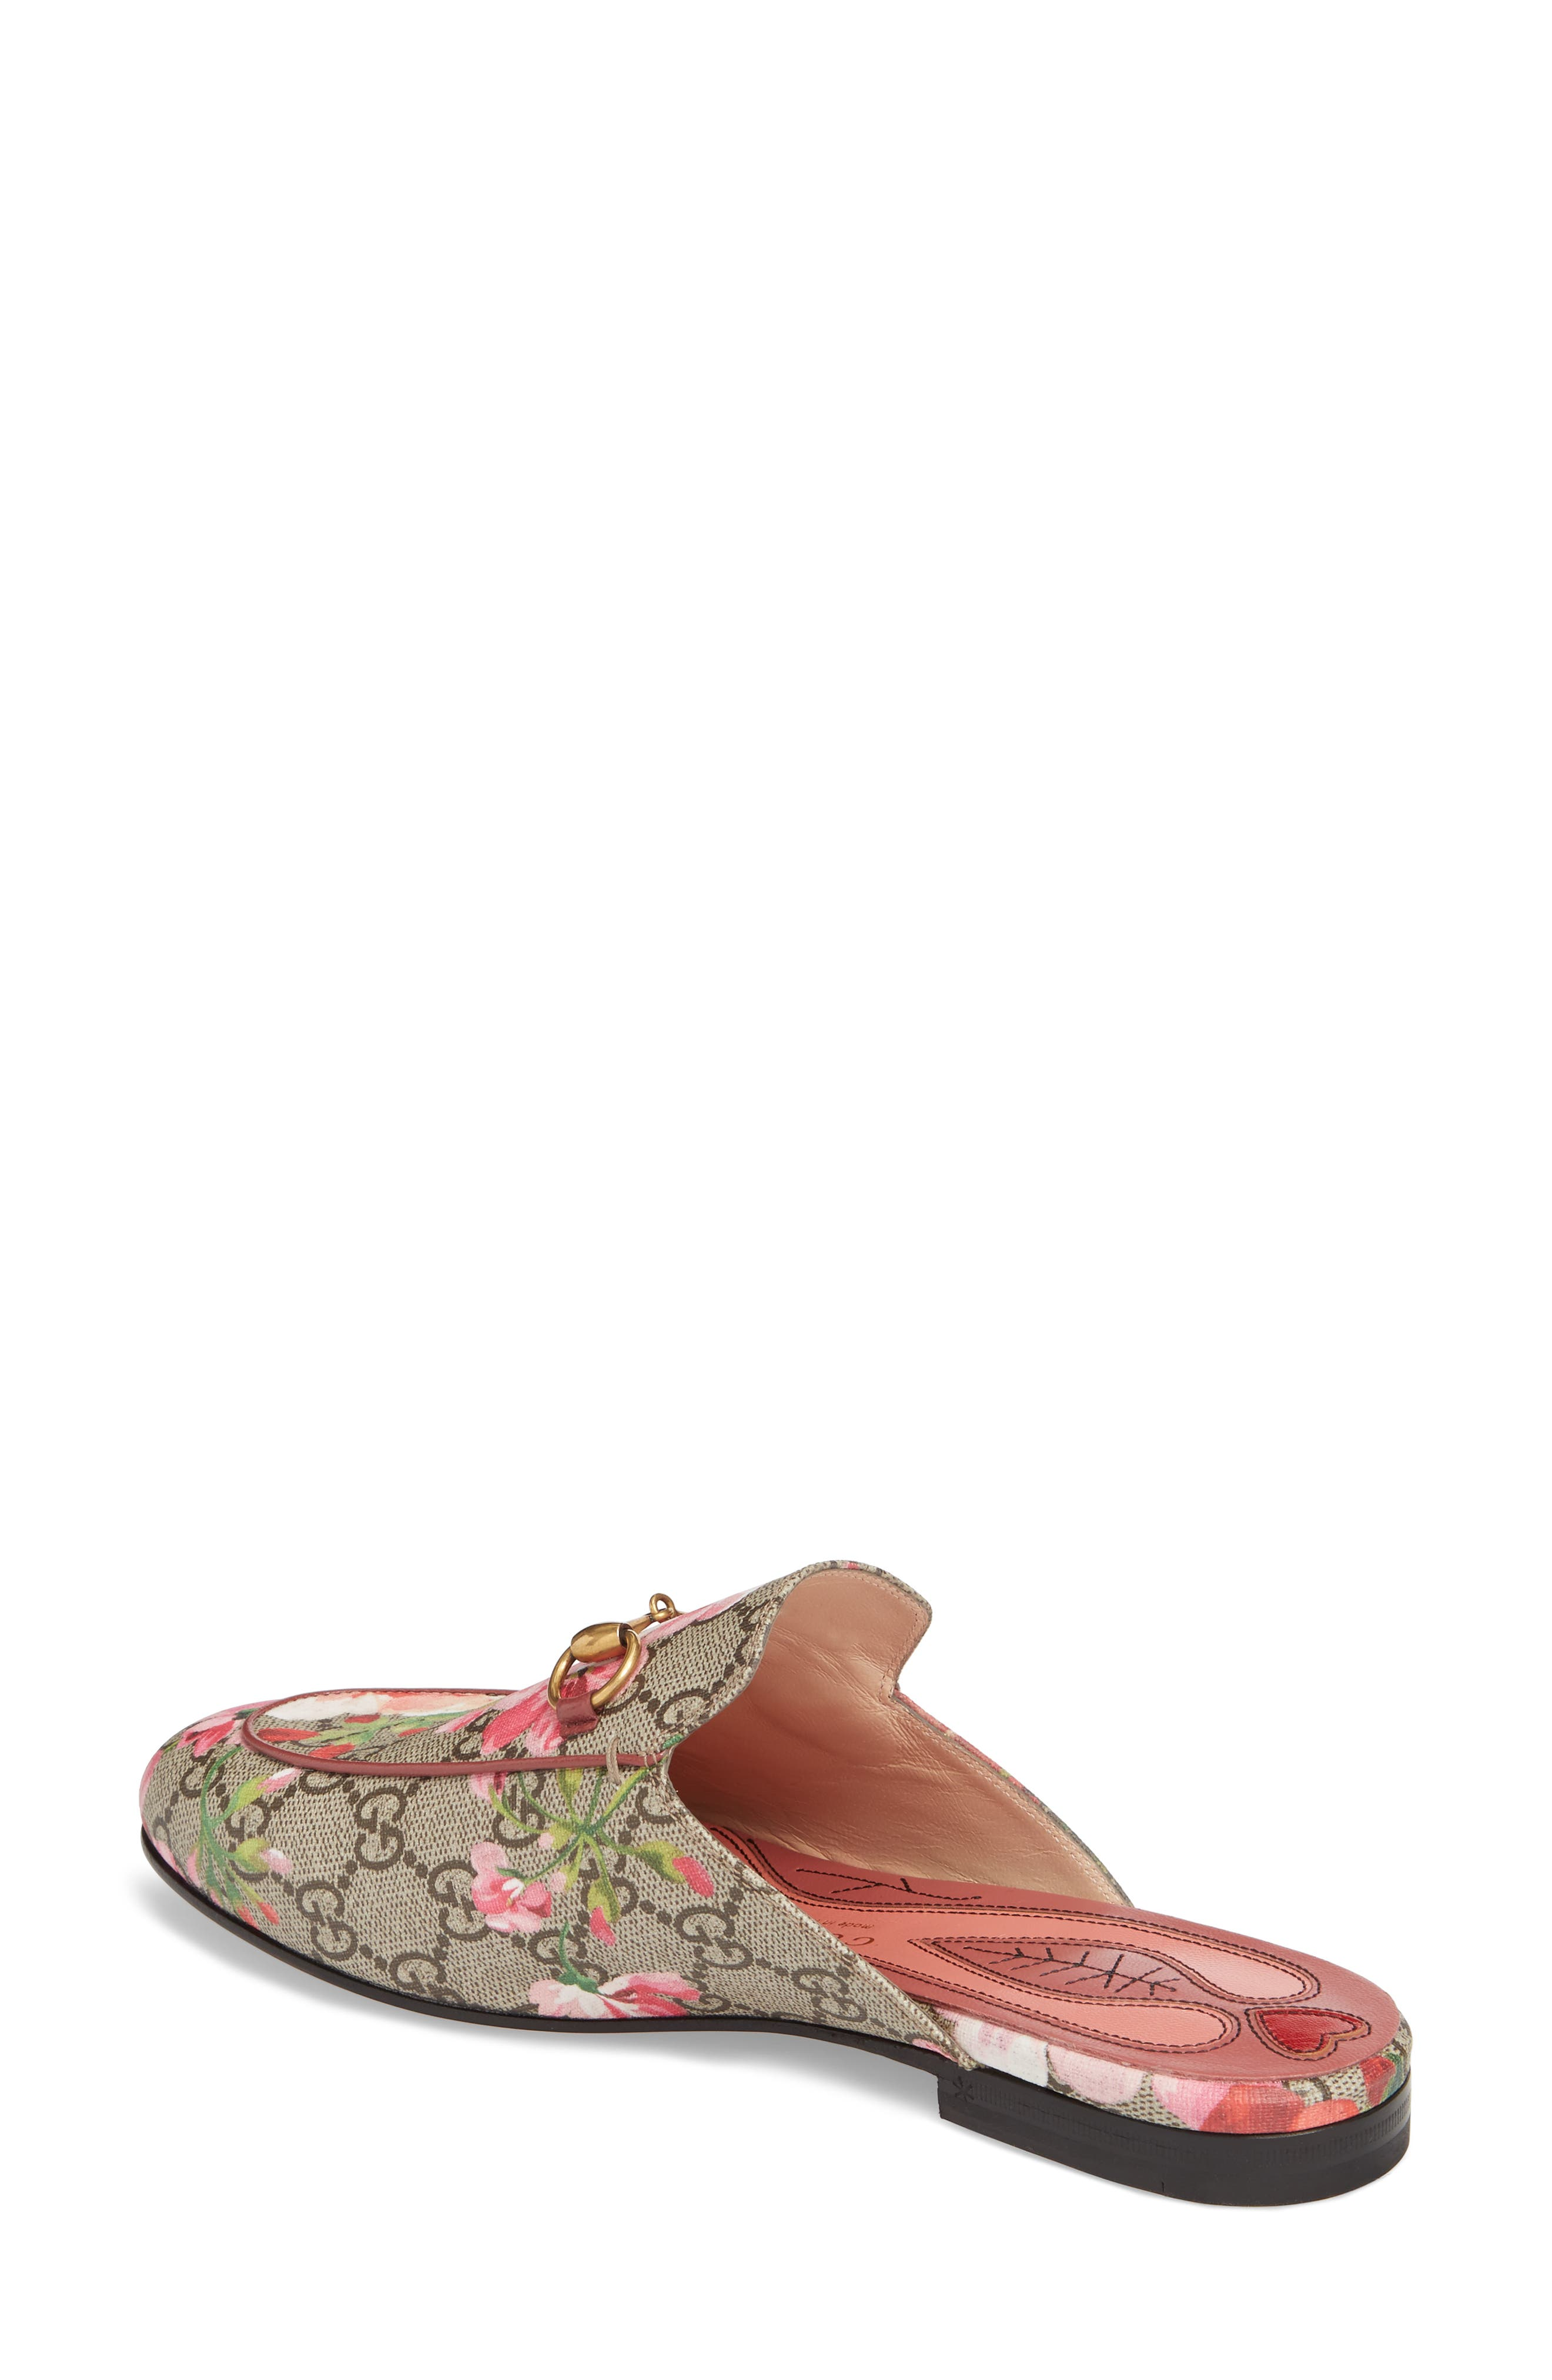 Princetown Loafer Mule,                             Alternate thumbnail 2, color,                             Beige/ Floral Print